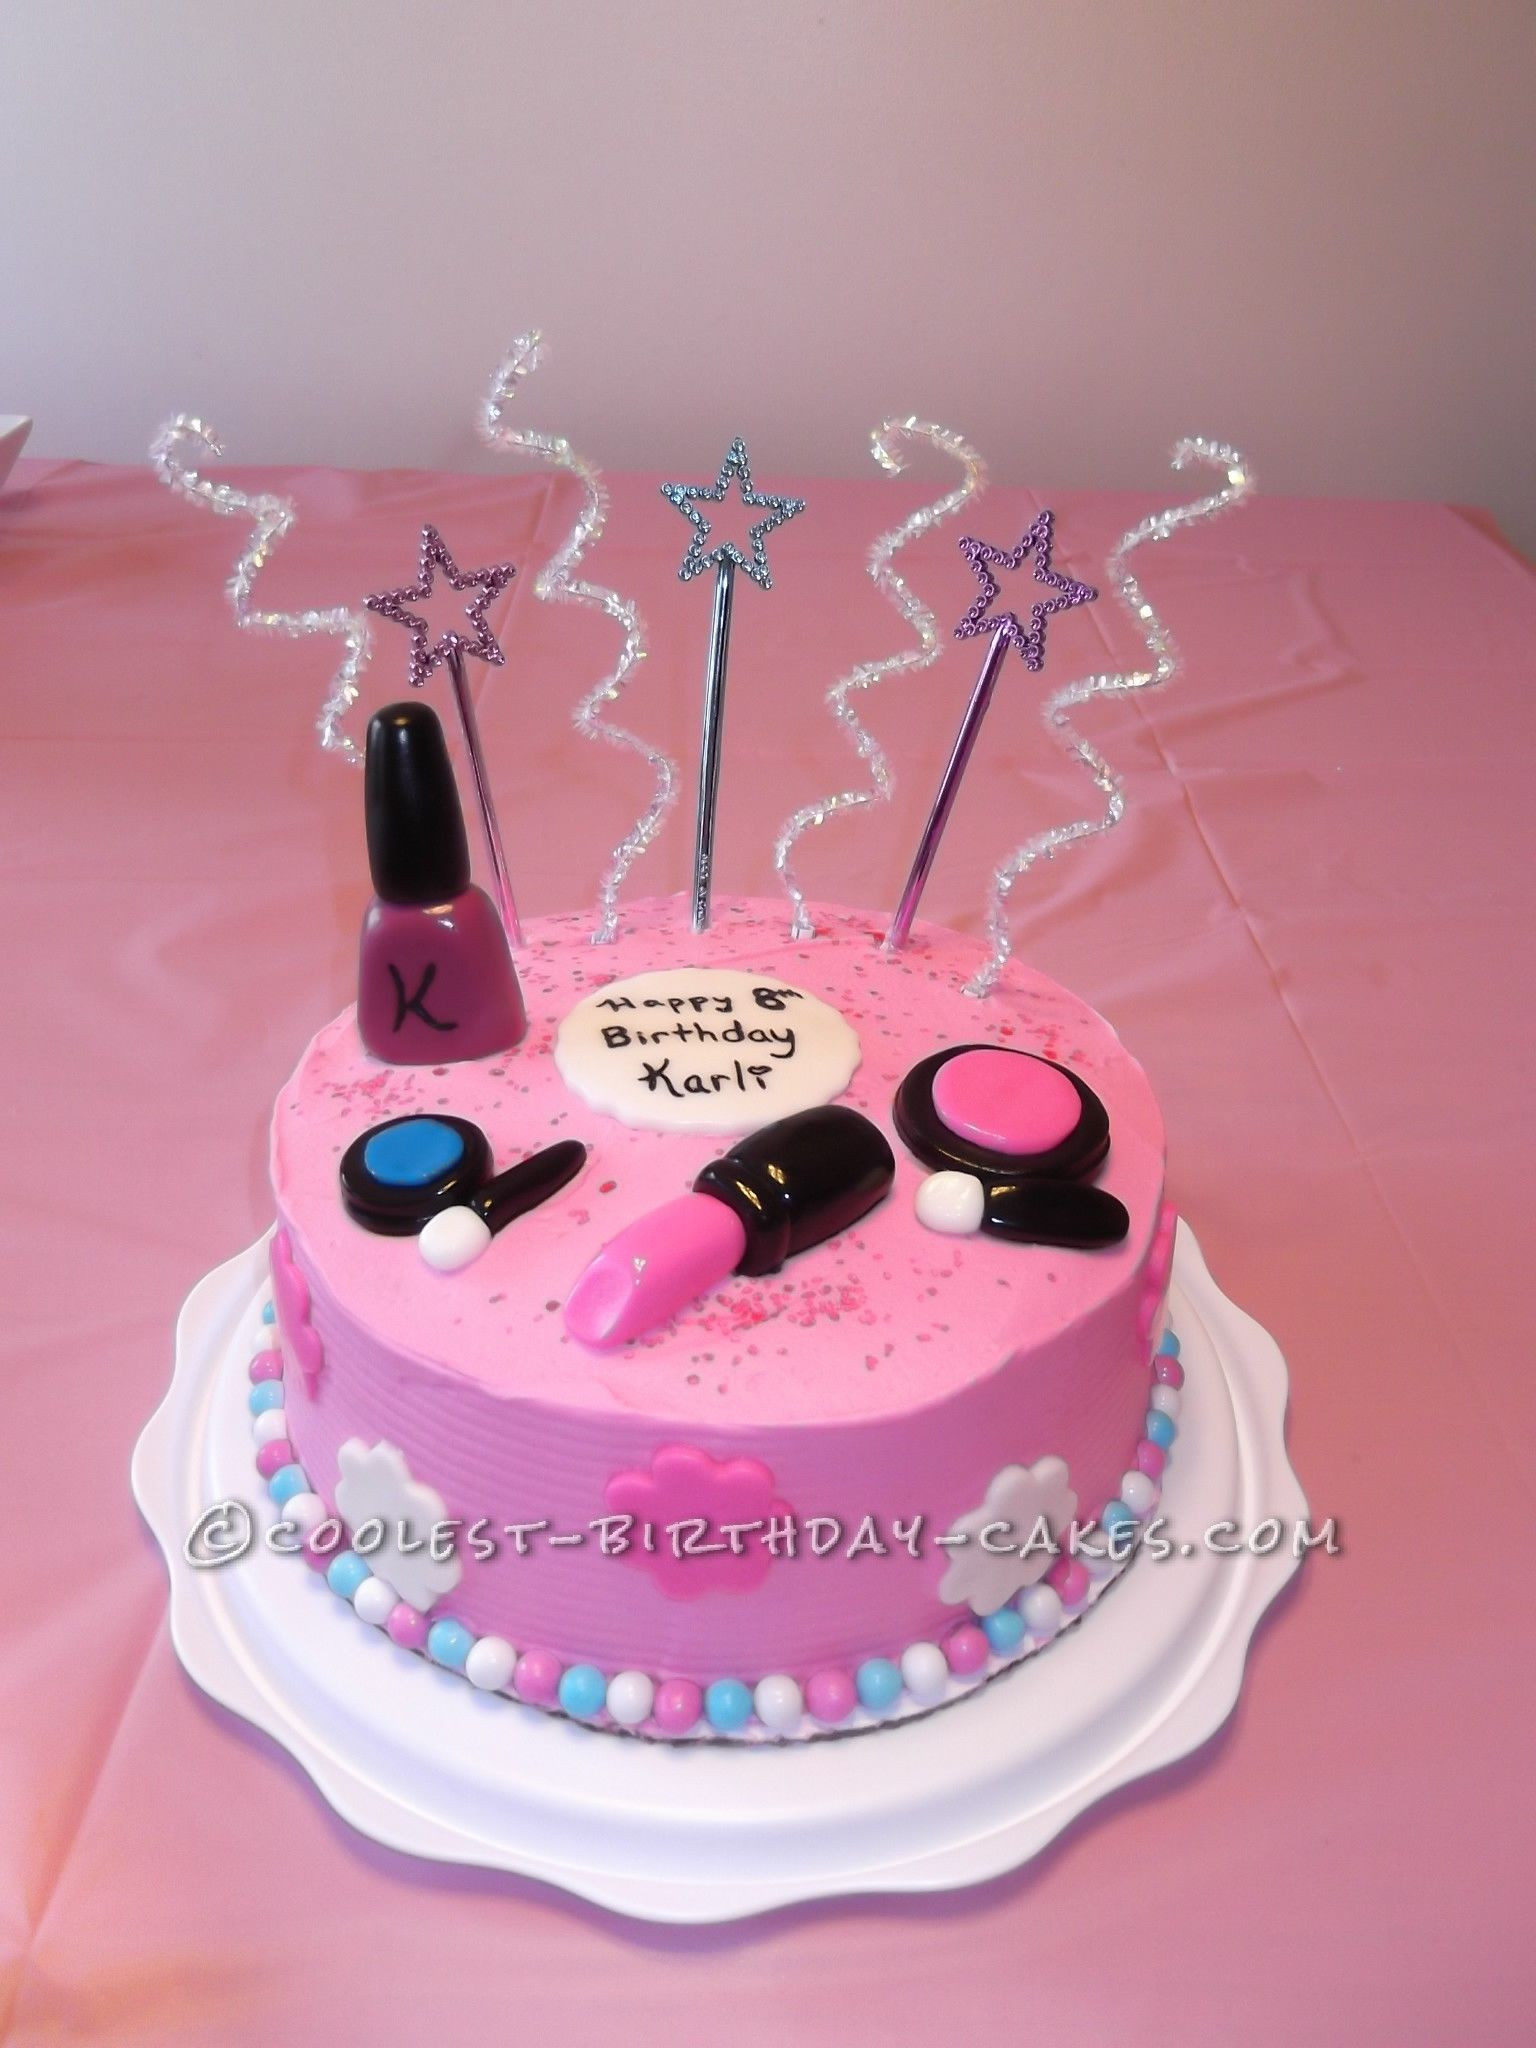 Best ideas about Birthday Cake For 12 Years Old Girl . Save or Pin Sweet Makeup Cake For An 8 Year Old Girl Now.